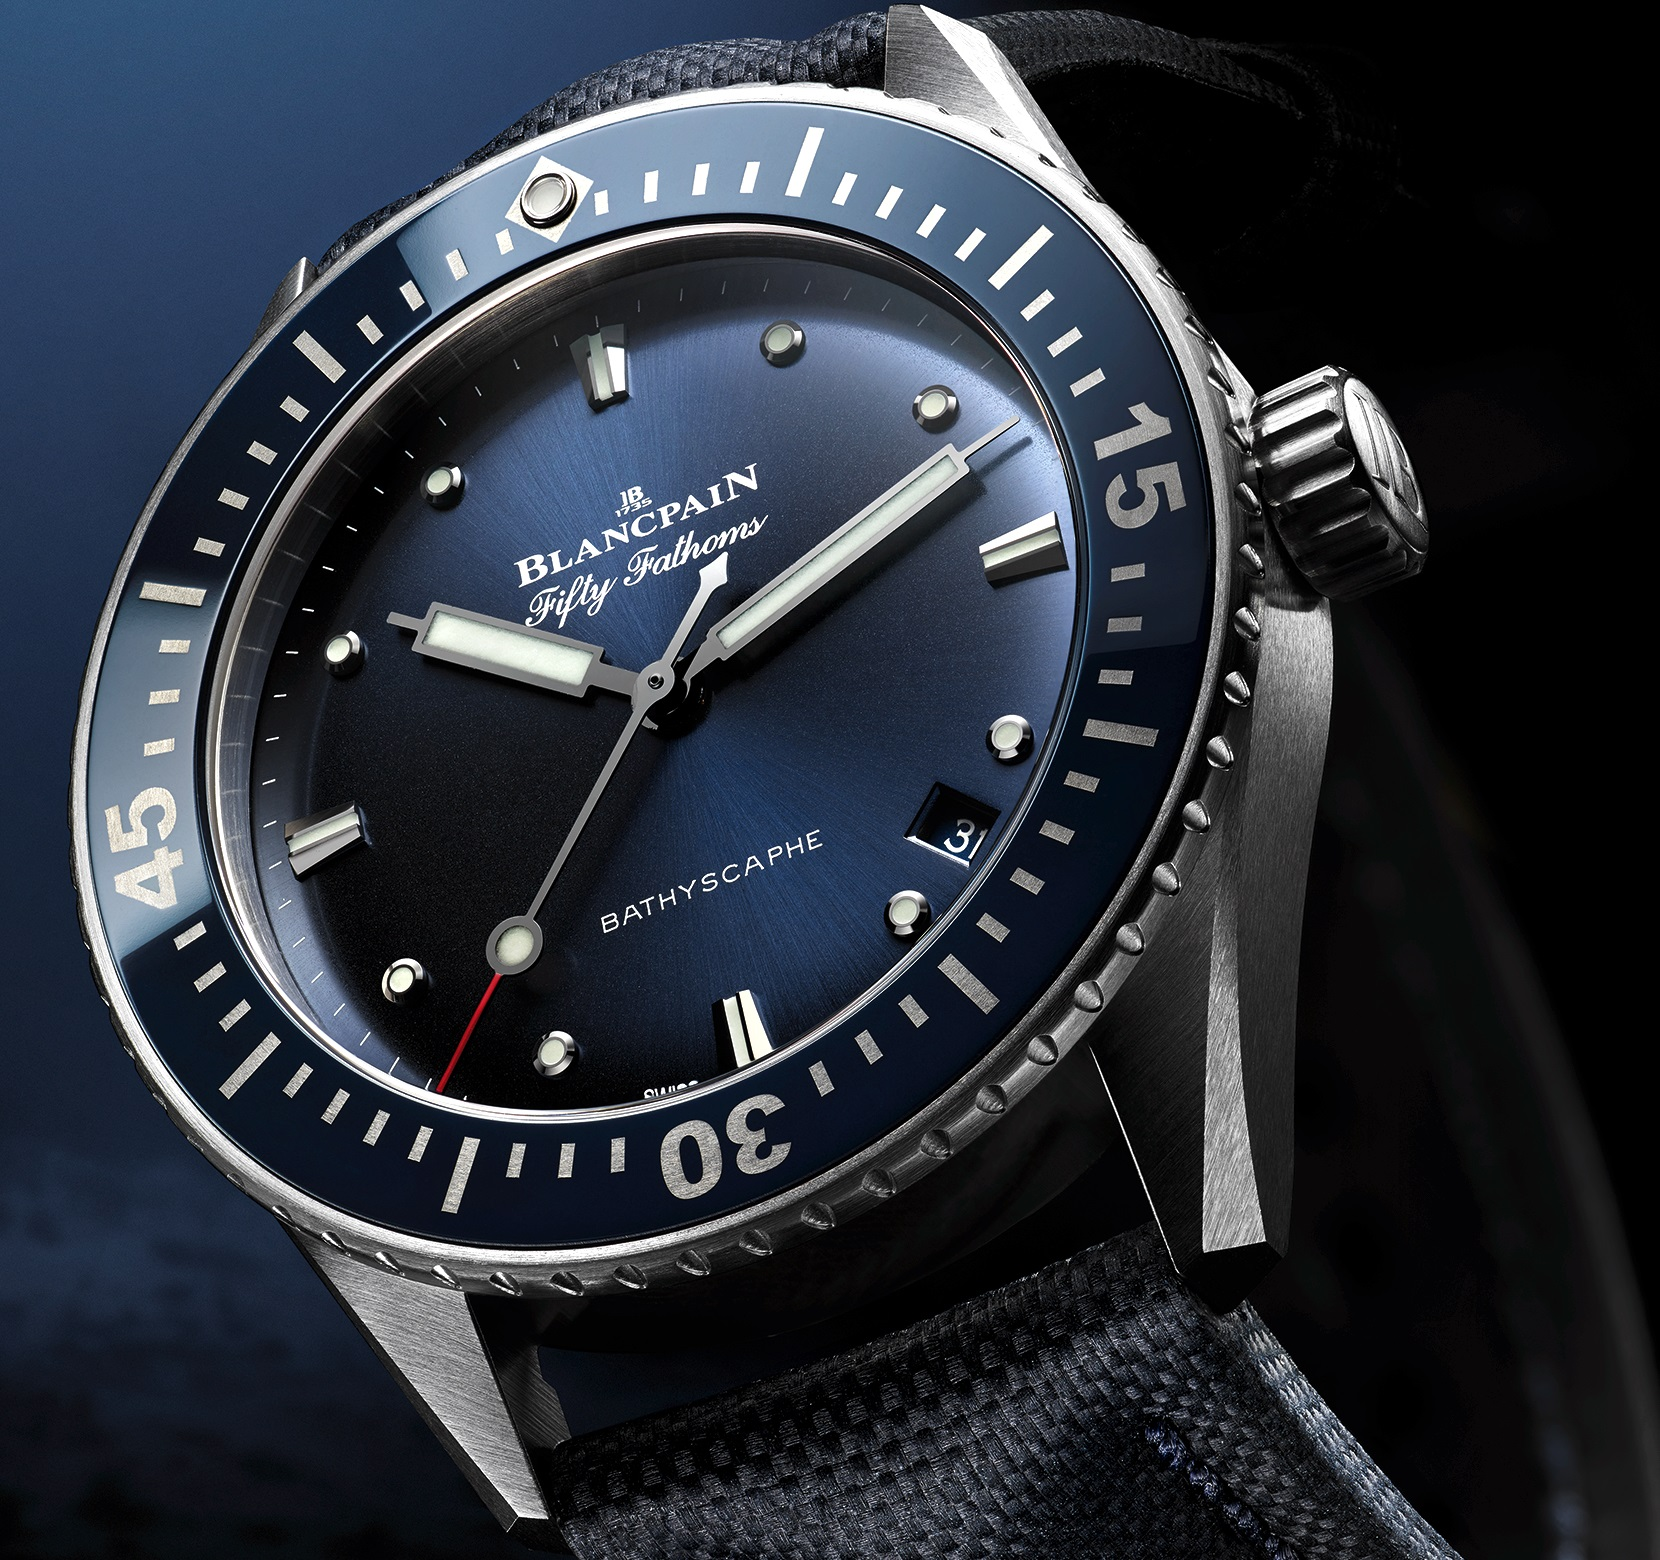 Blancpain Fifty Fathoms Bathyscaphe_1